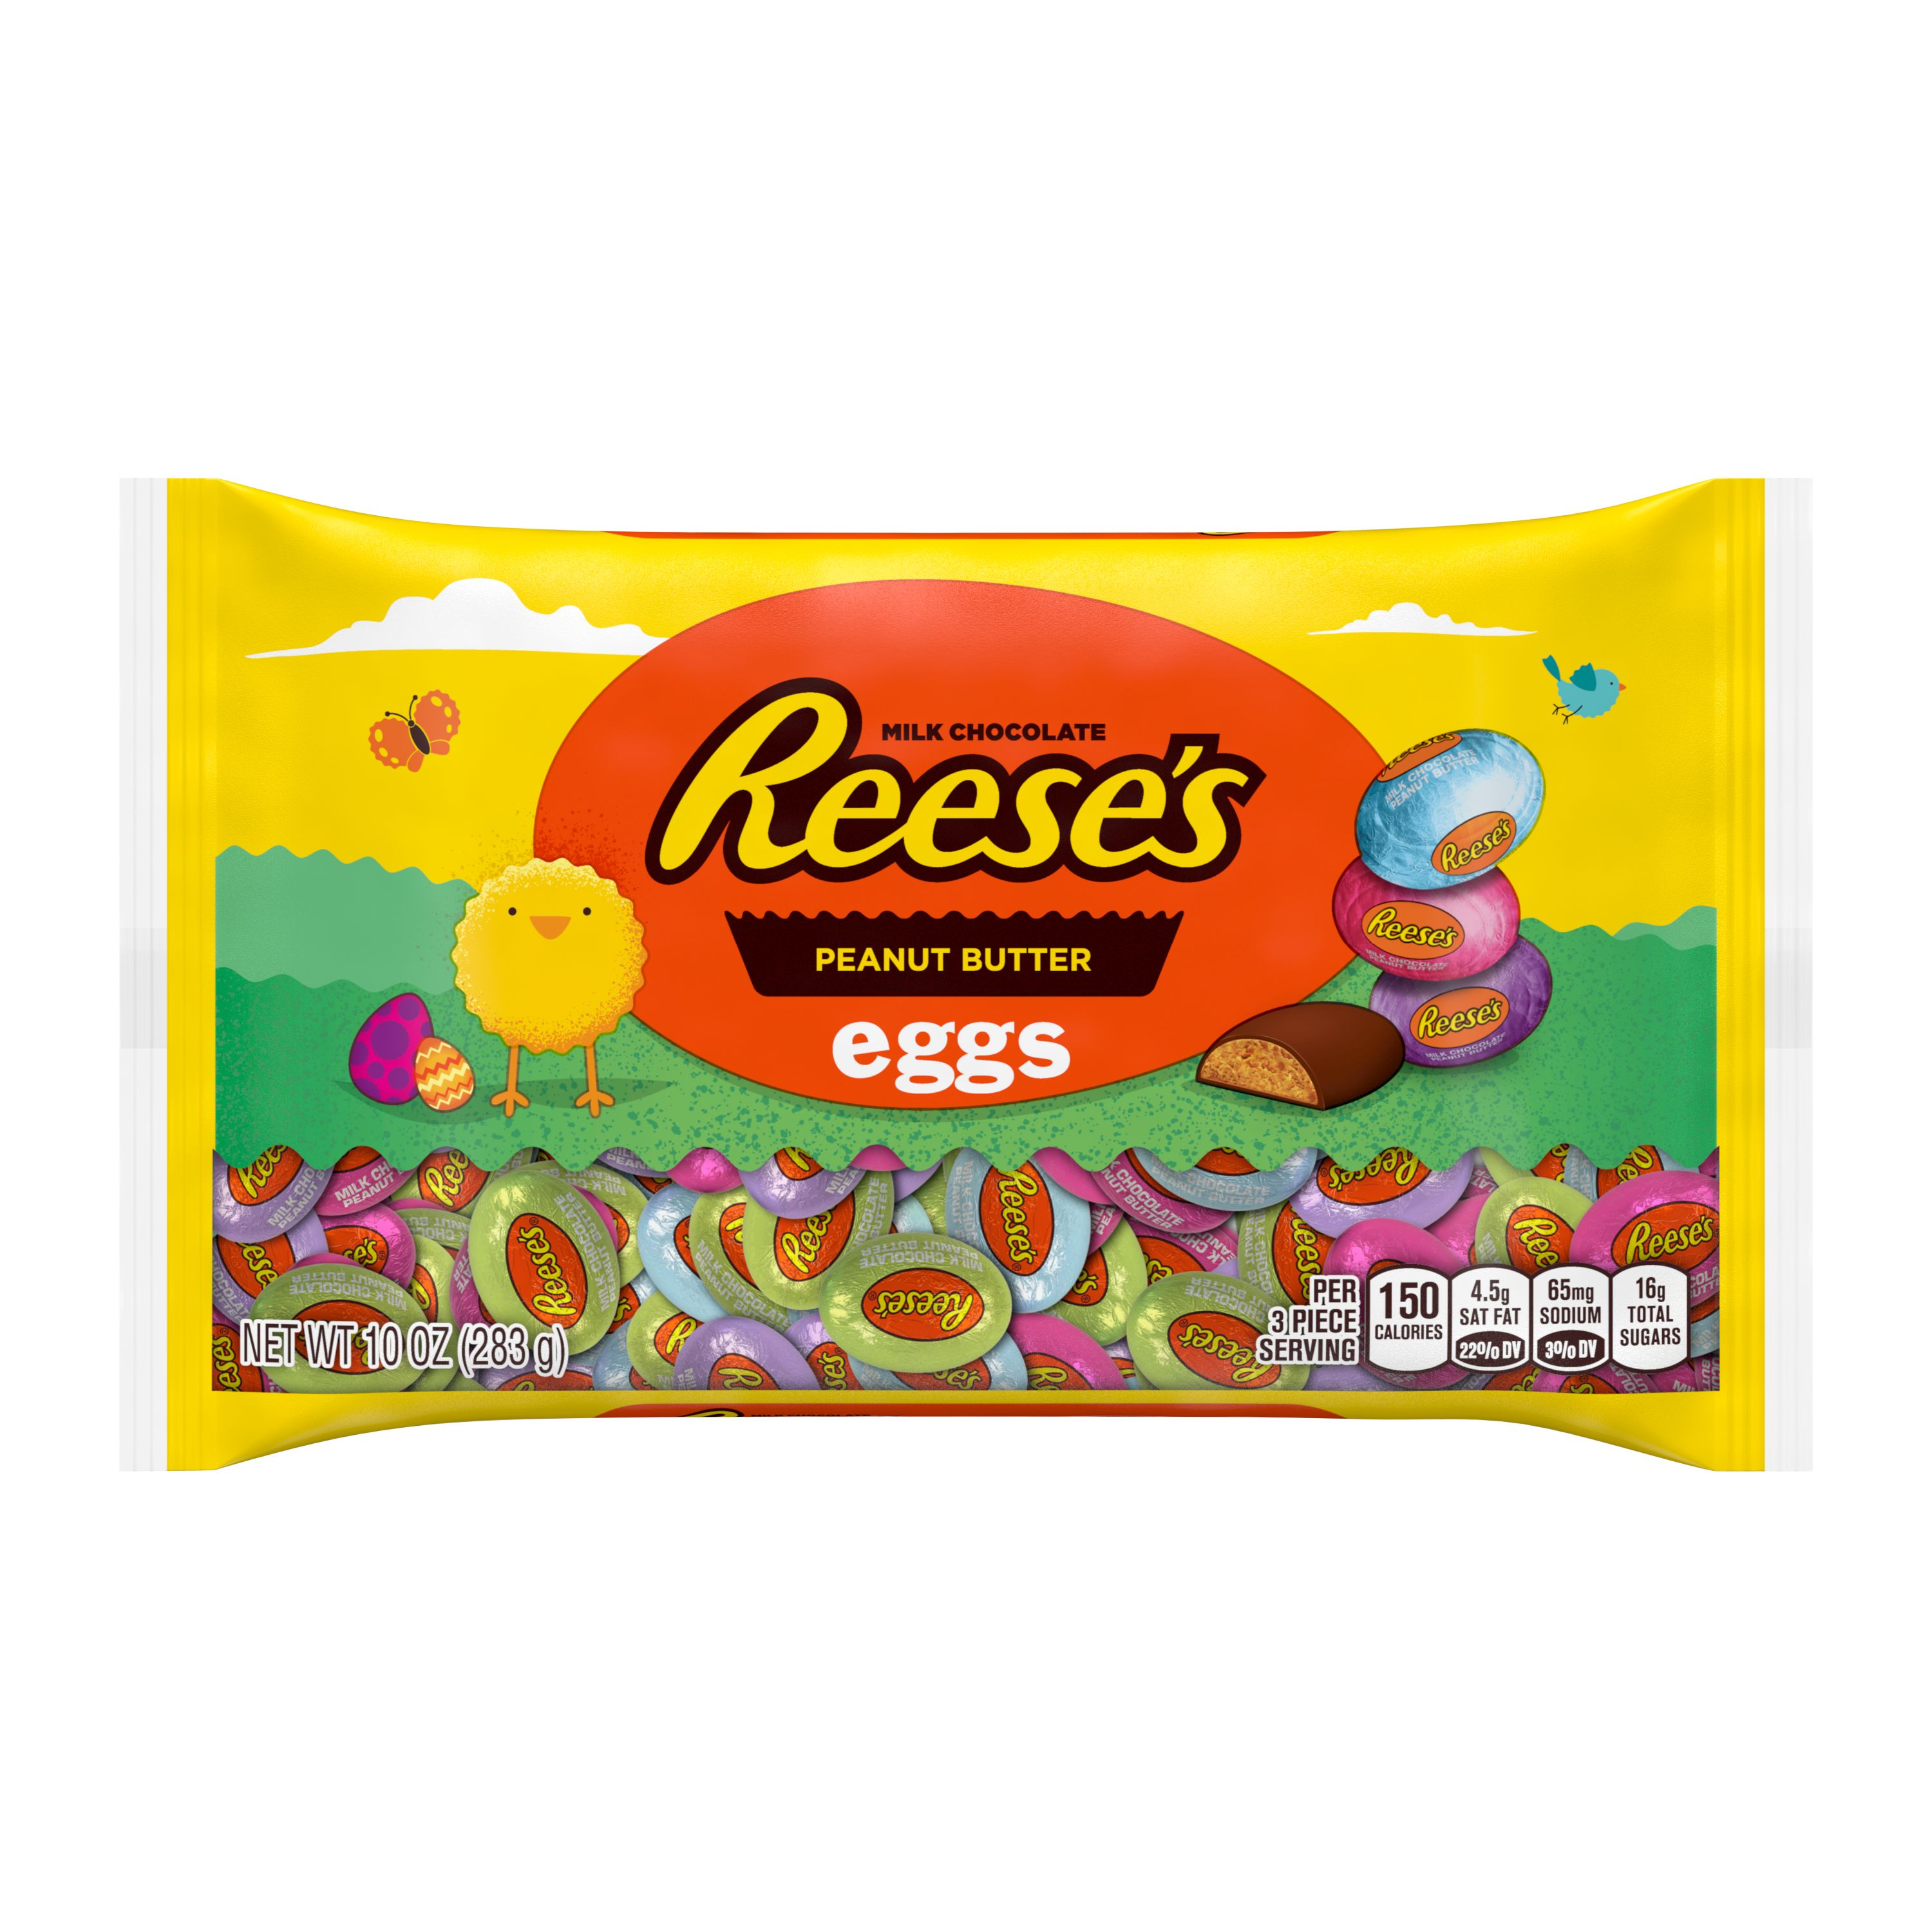 REESE'S, Milk Chocolate Peanut Butter Eggs Candy, Easter, 10 oz, Bag